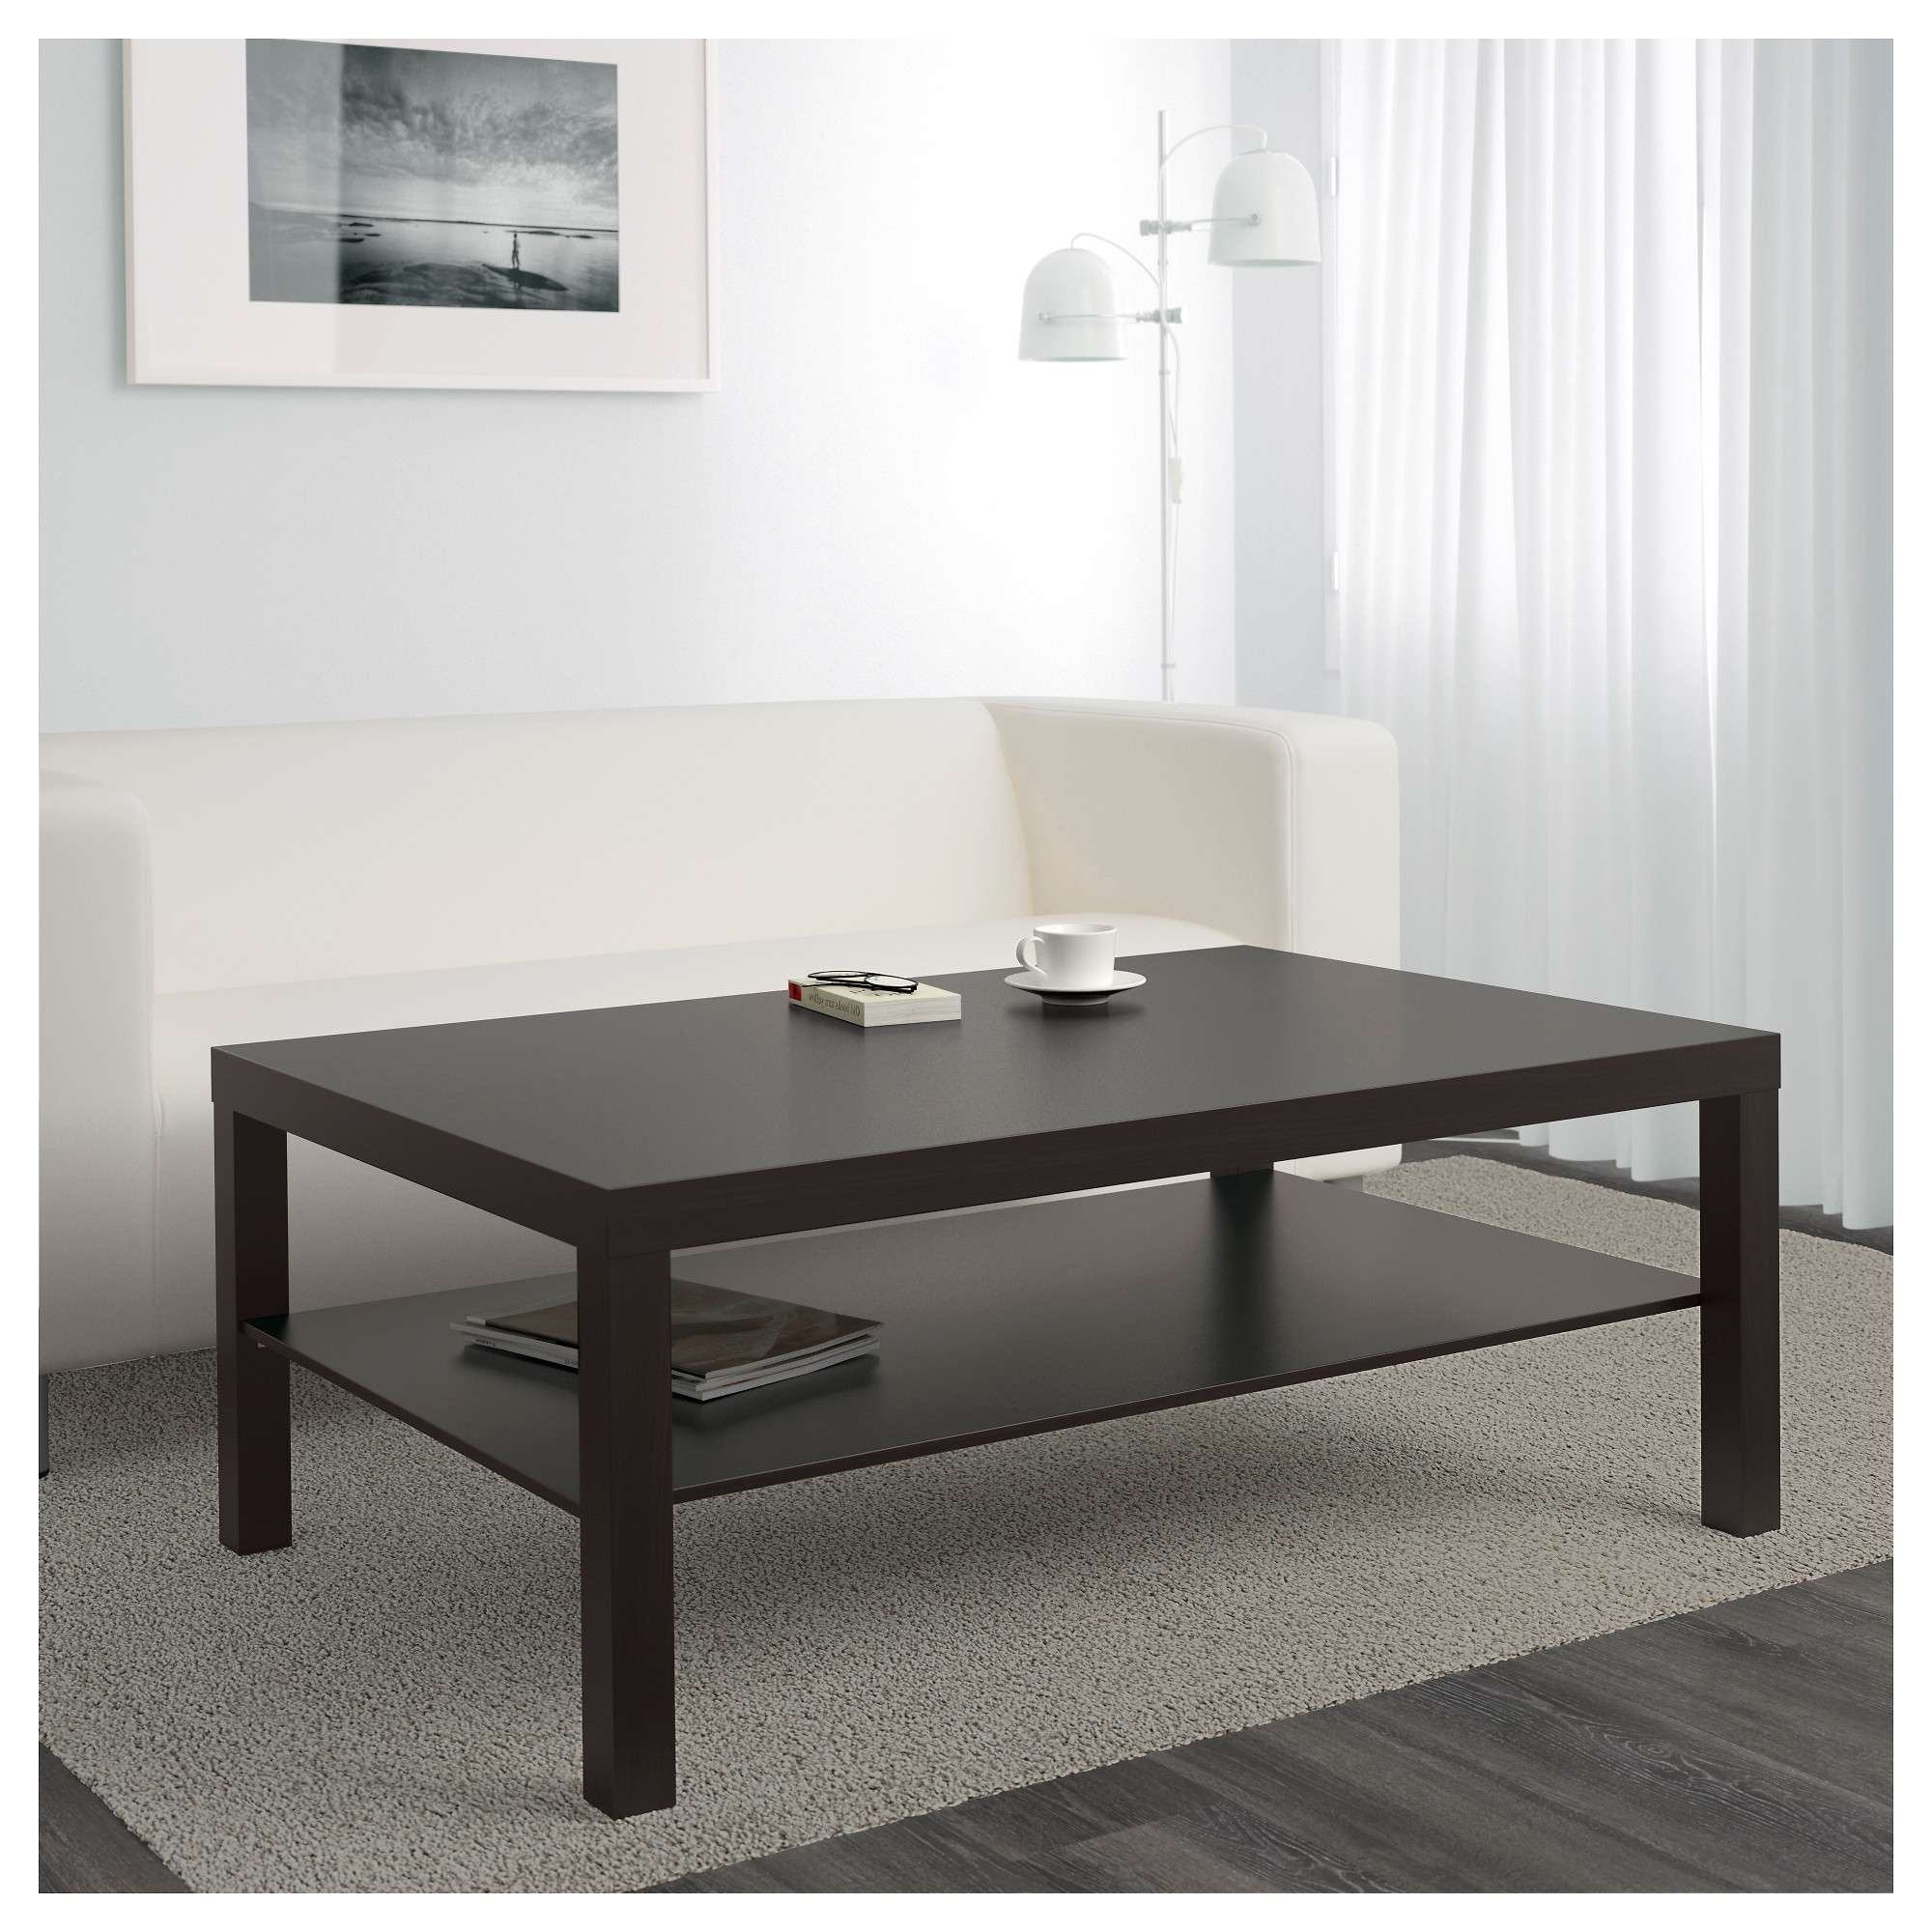 Lack Coffee Table – Black Brown – Ikea Intended For Popular Dark Brown Coffee Tables (View 3 of 20)